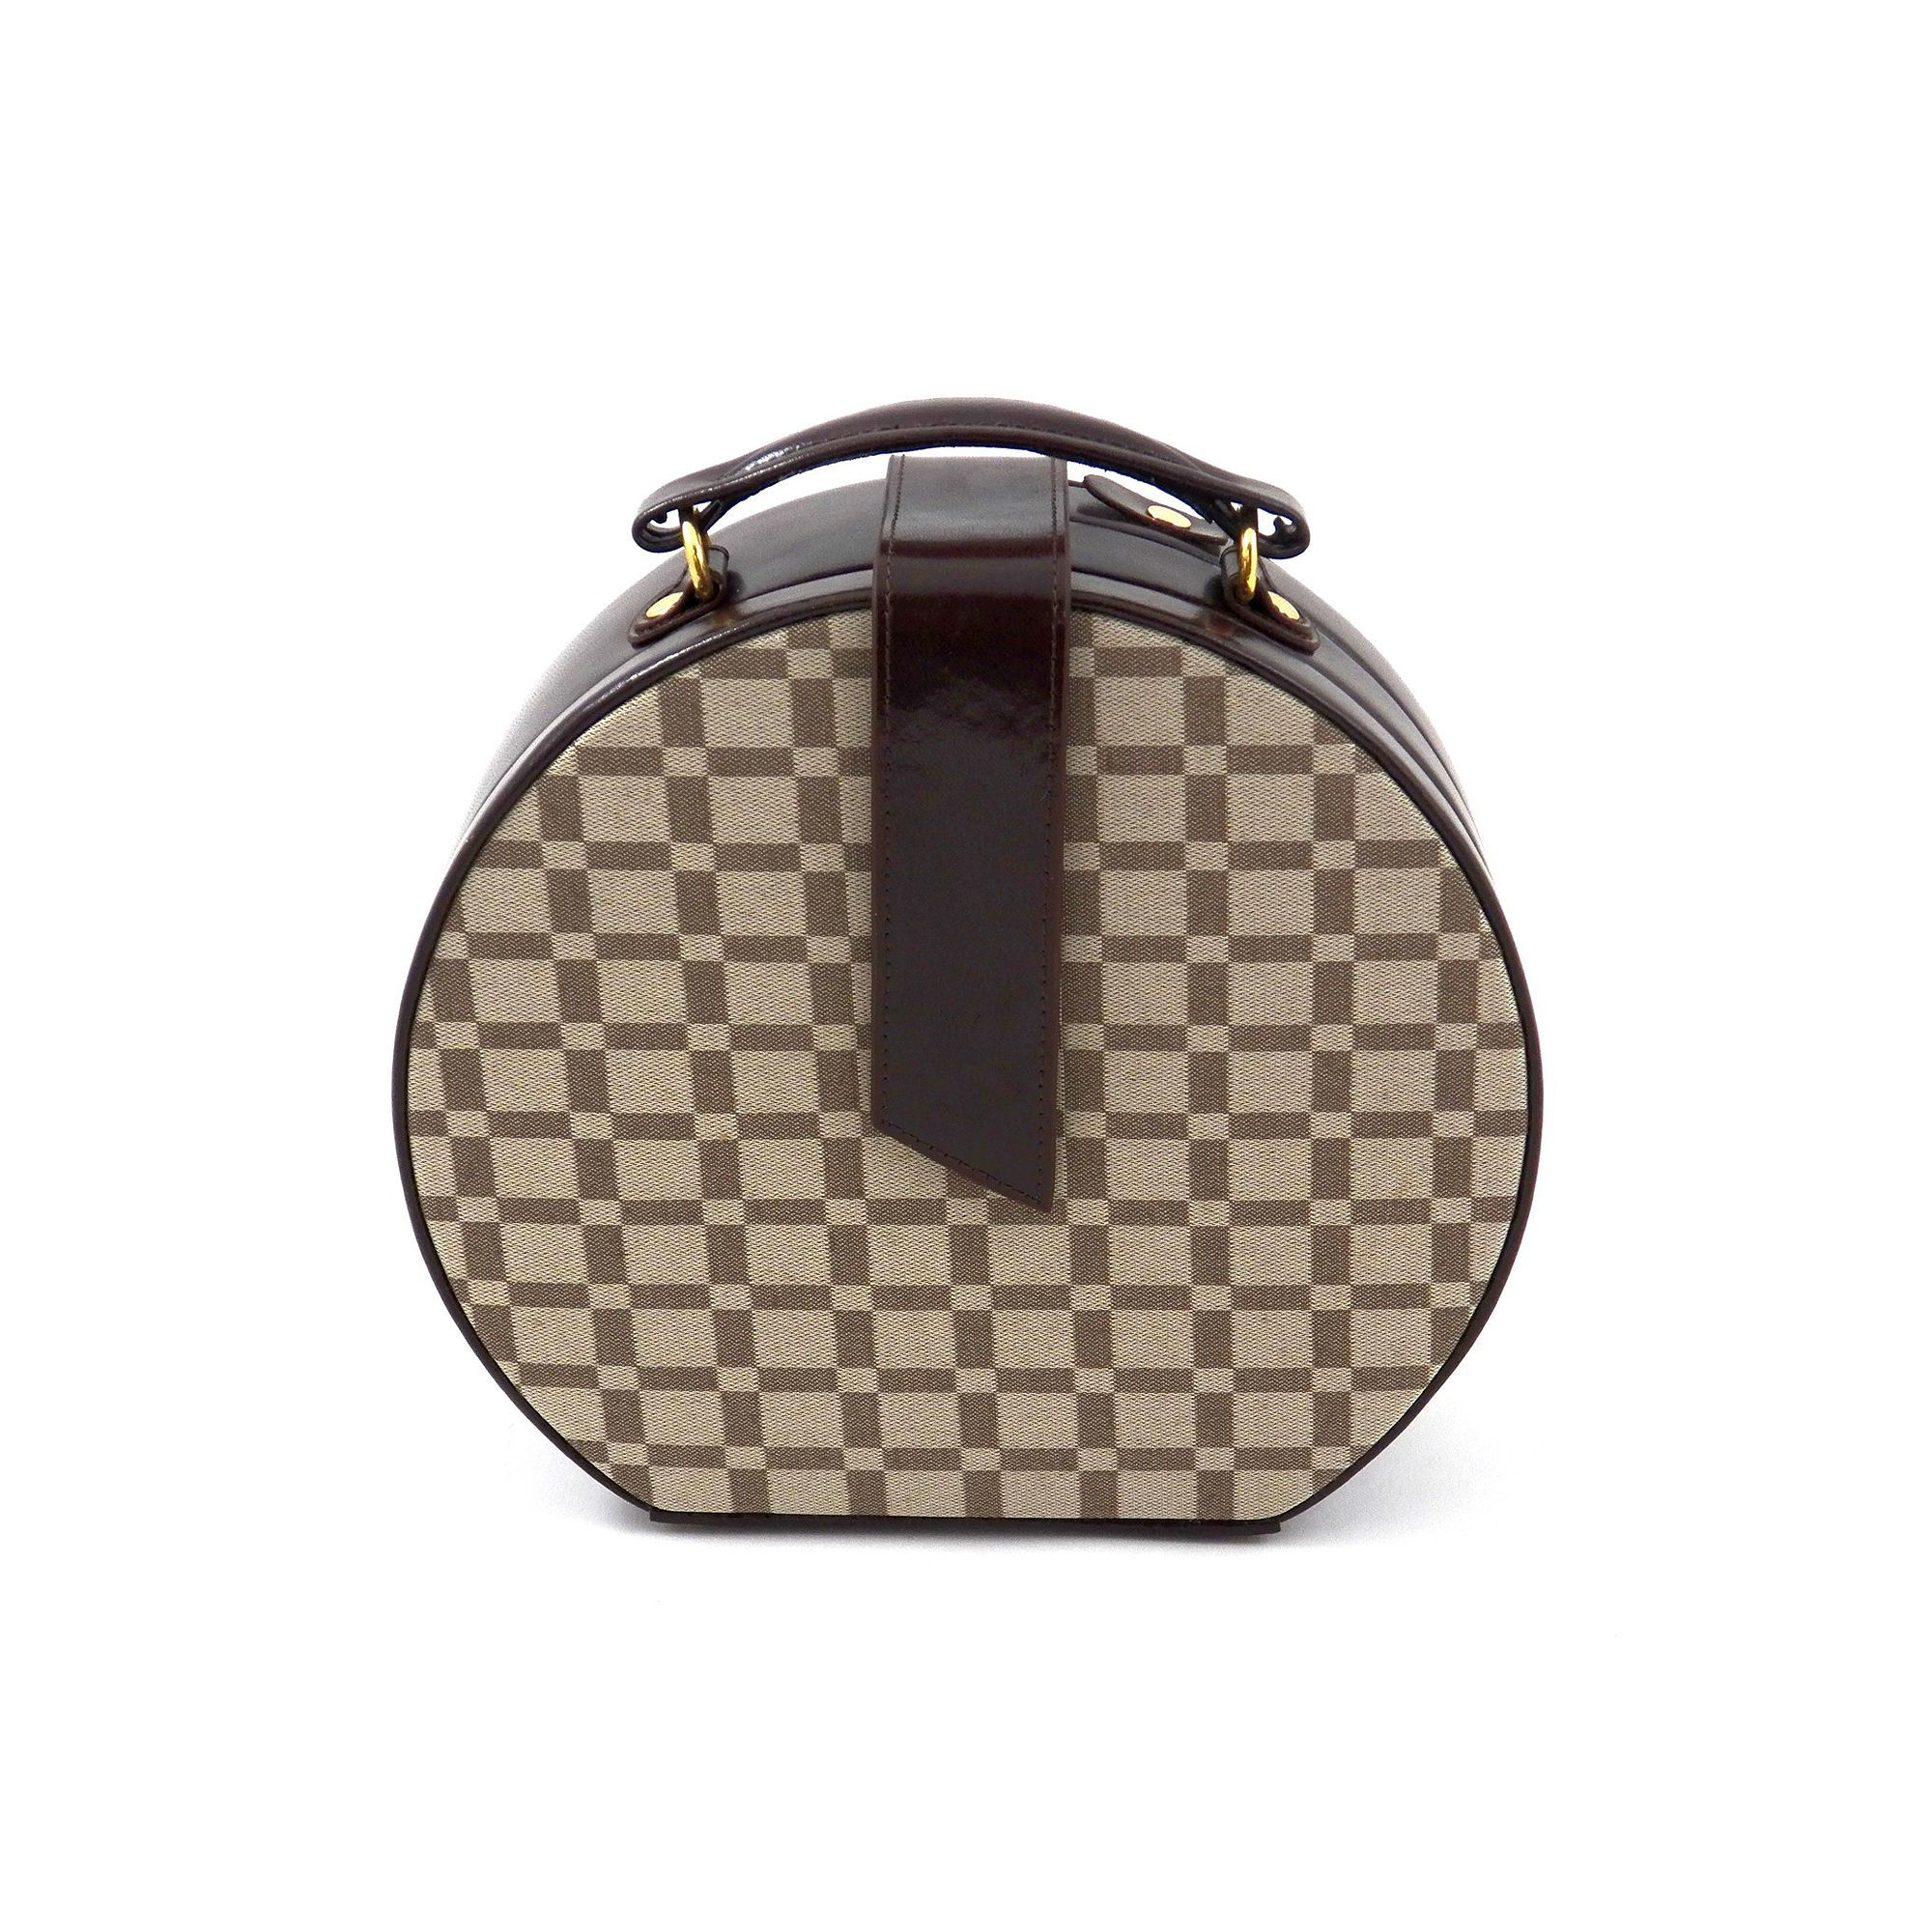 Kohls Jewelry Box Prepossessing Beyberk Brown Leather Checkered Jewelry Box And Valet Tray Set Design Inspiration